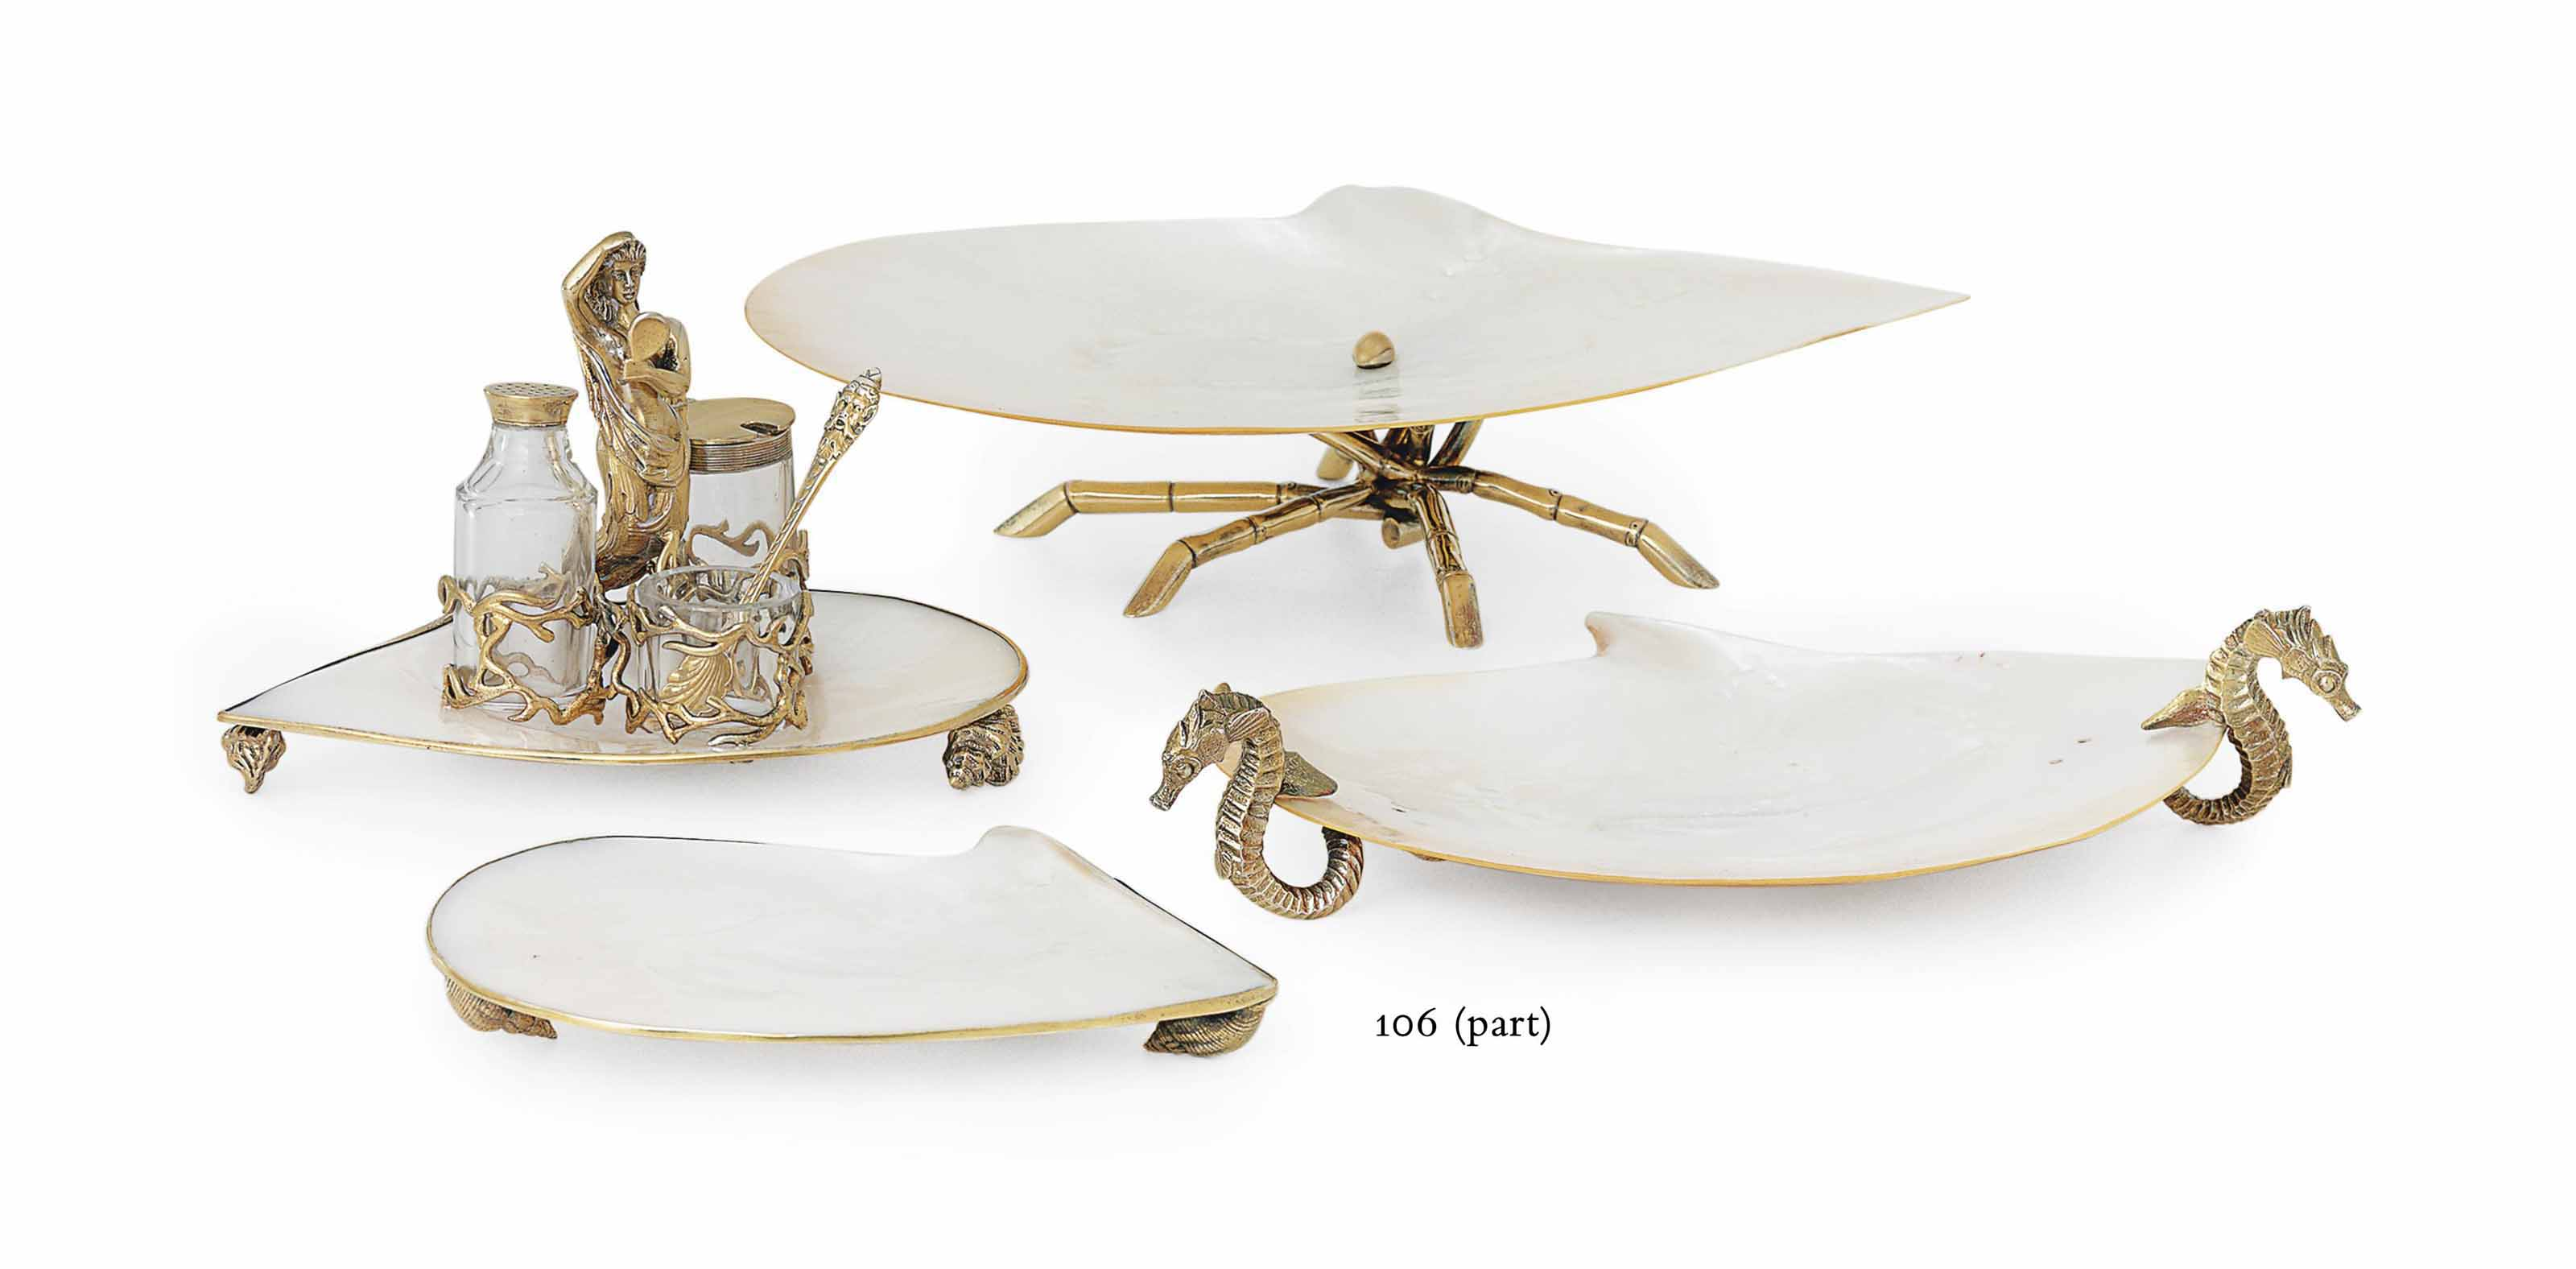 A VICTORIAN AND CHINESE EXPORT SILVER-GILT AND MOTHER-OF-PEARL DESSERT SERVICE